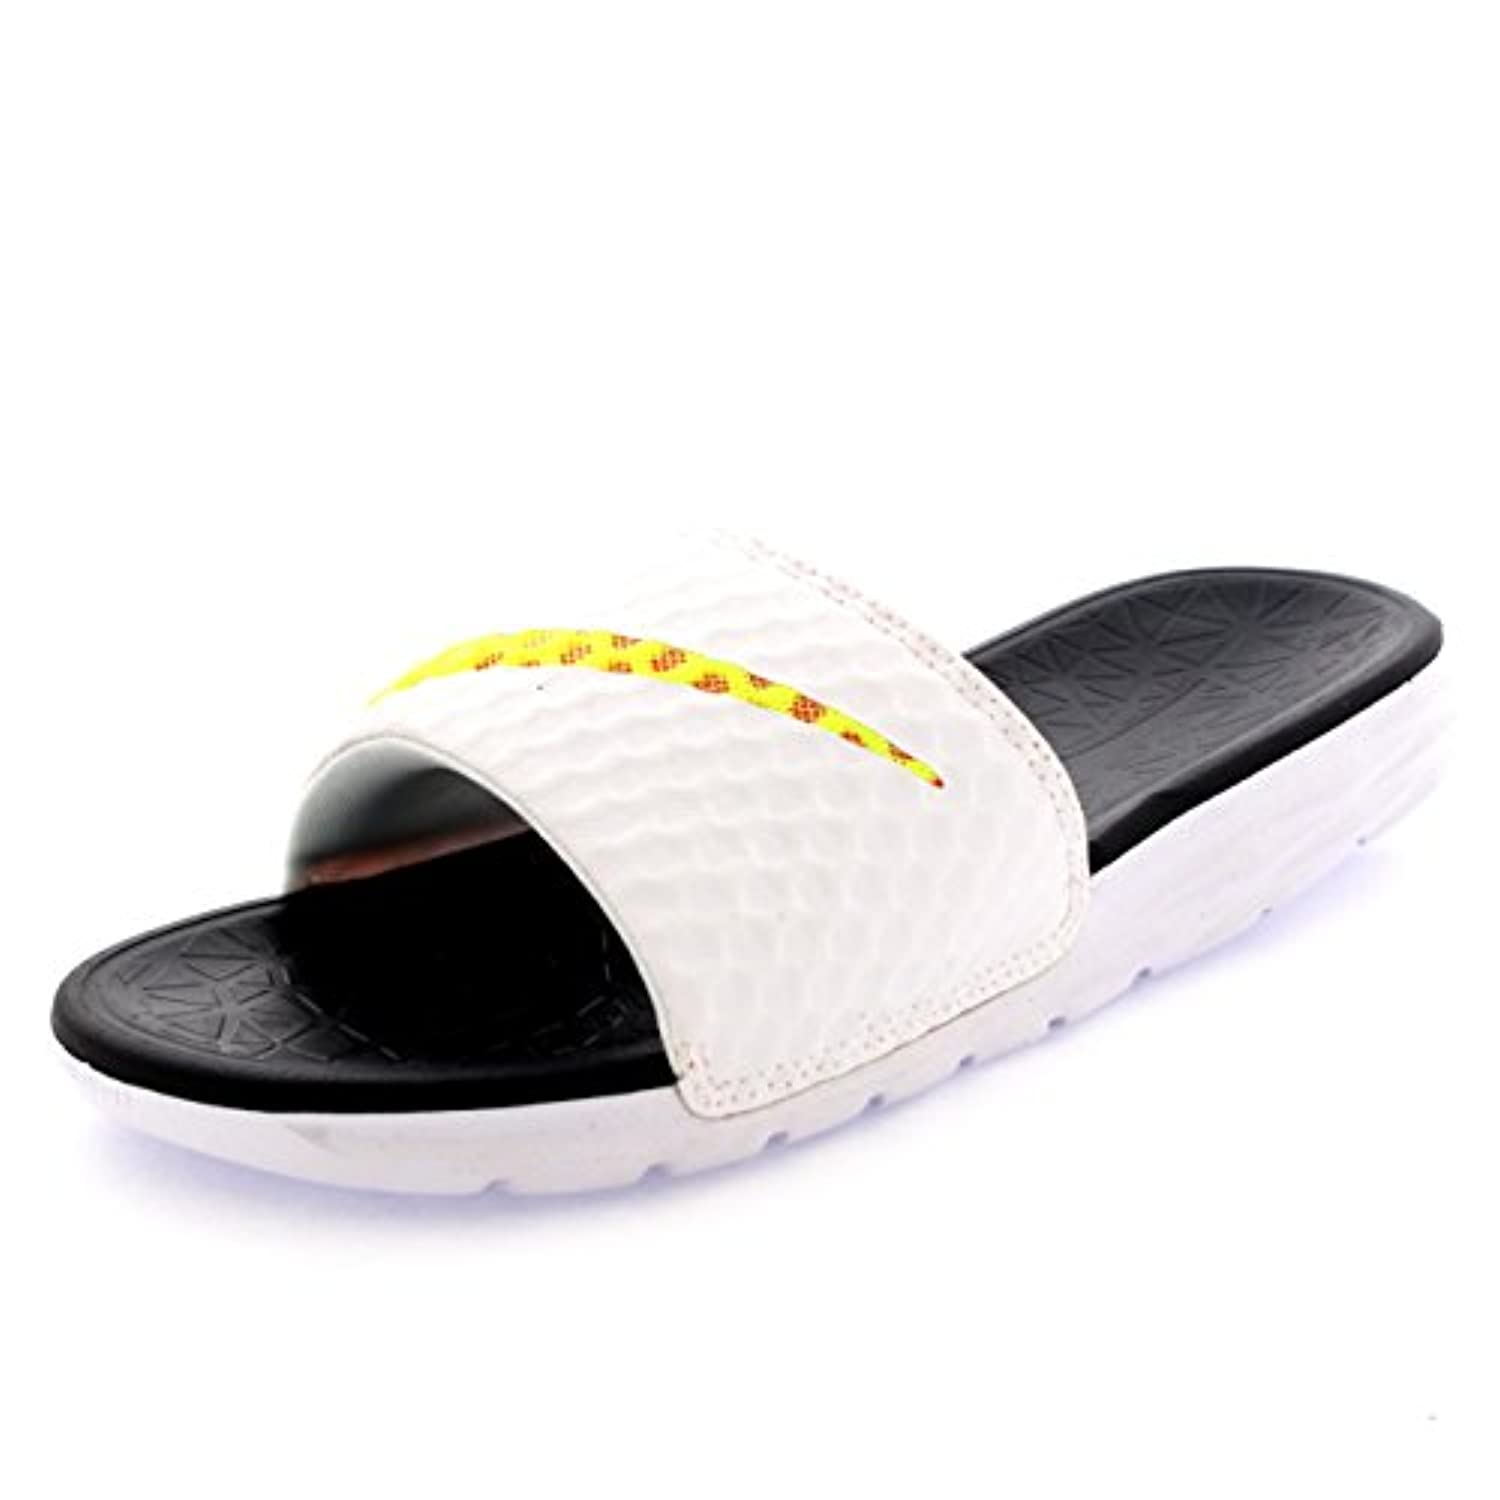 ... Unisex Adults Nike Benassi Solarsoft Slide 2 Pool Slippers Beach Sandals  - White/Black ...